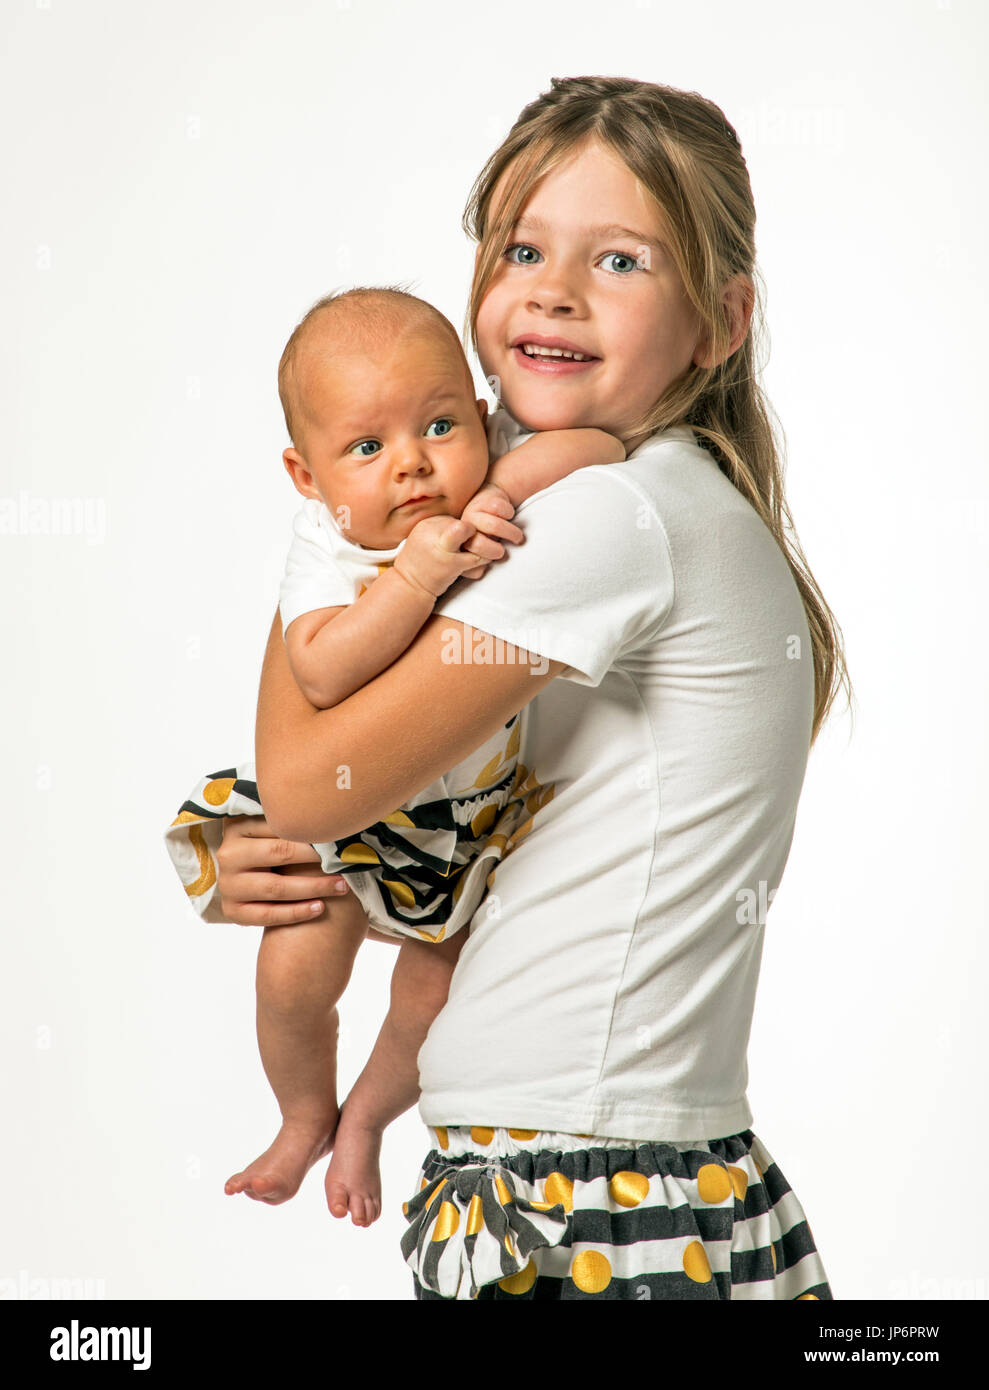 Studio portrait of 7 year old girl holding 7 week old baby - Stock Image